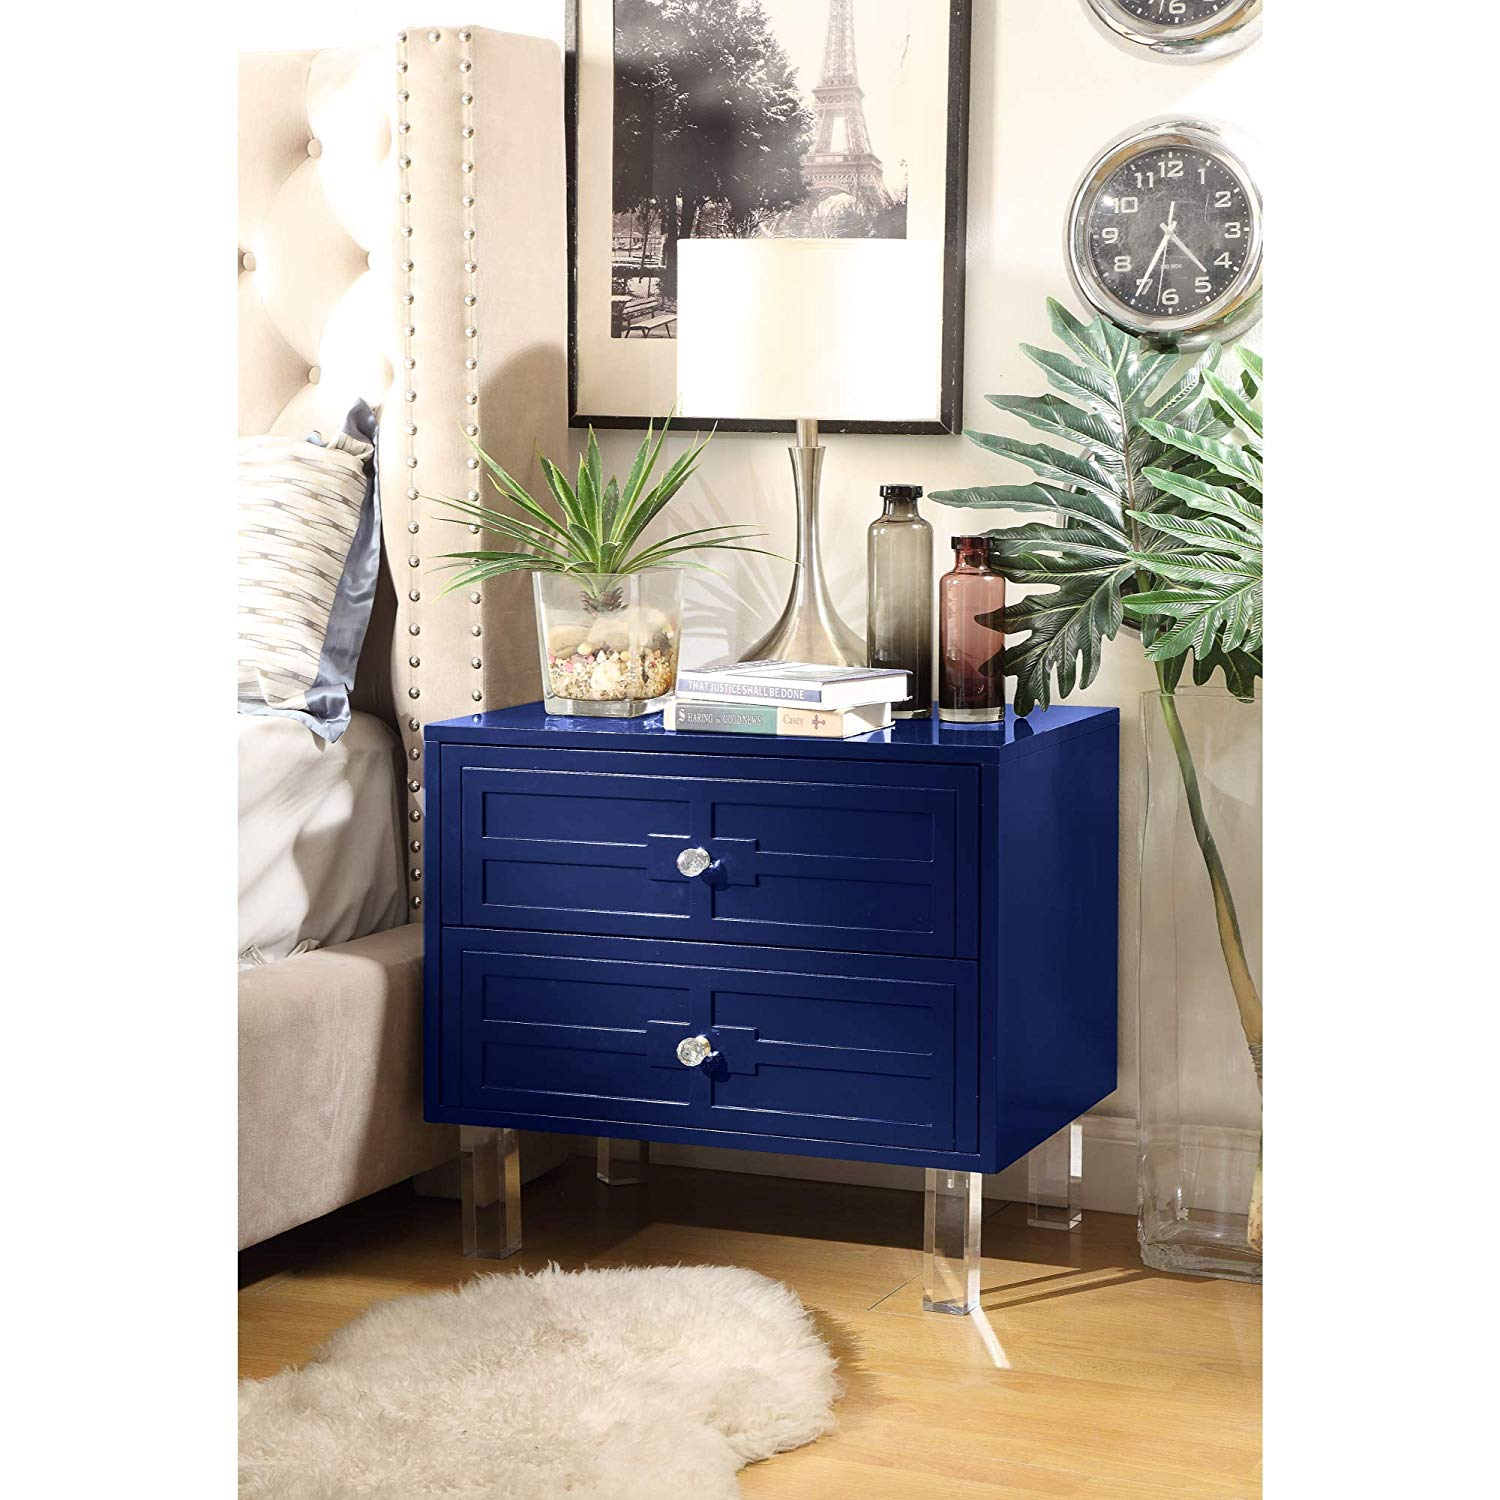 inspired home navy blue nightstand design donatello accent table drawer side acrylic legs lacquer finish kitchen dining rectangle drop leaf high end chandeliers ashley set